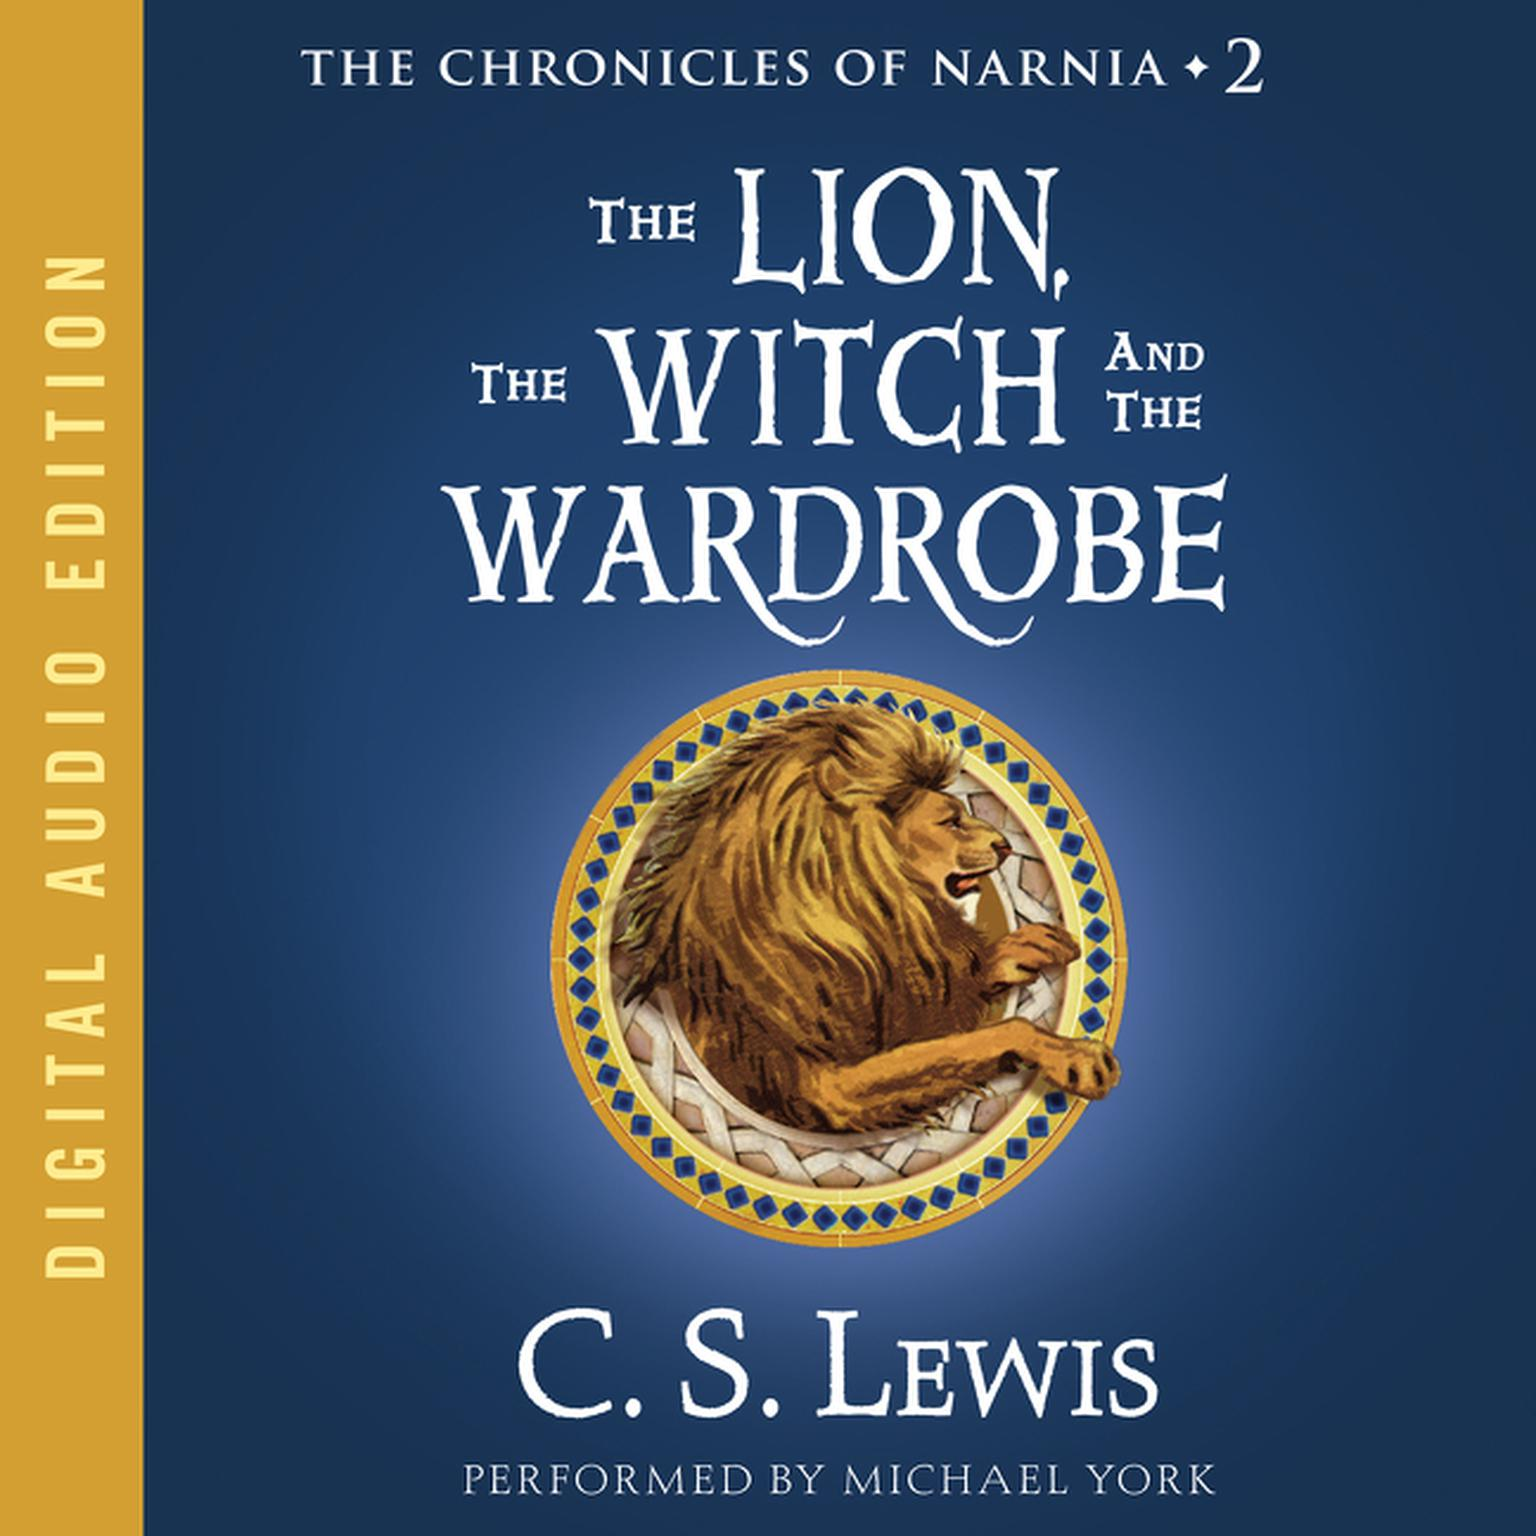 the lion the witch and the wardrobe essay stone table the  hear the lion the witch and the wardrobe audiobook by c s lewis extended audio sample the